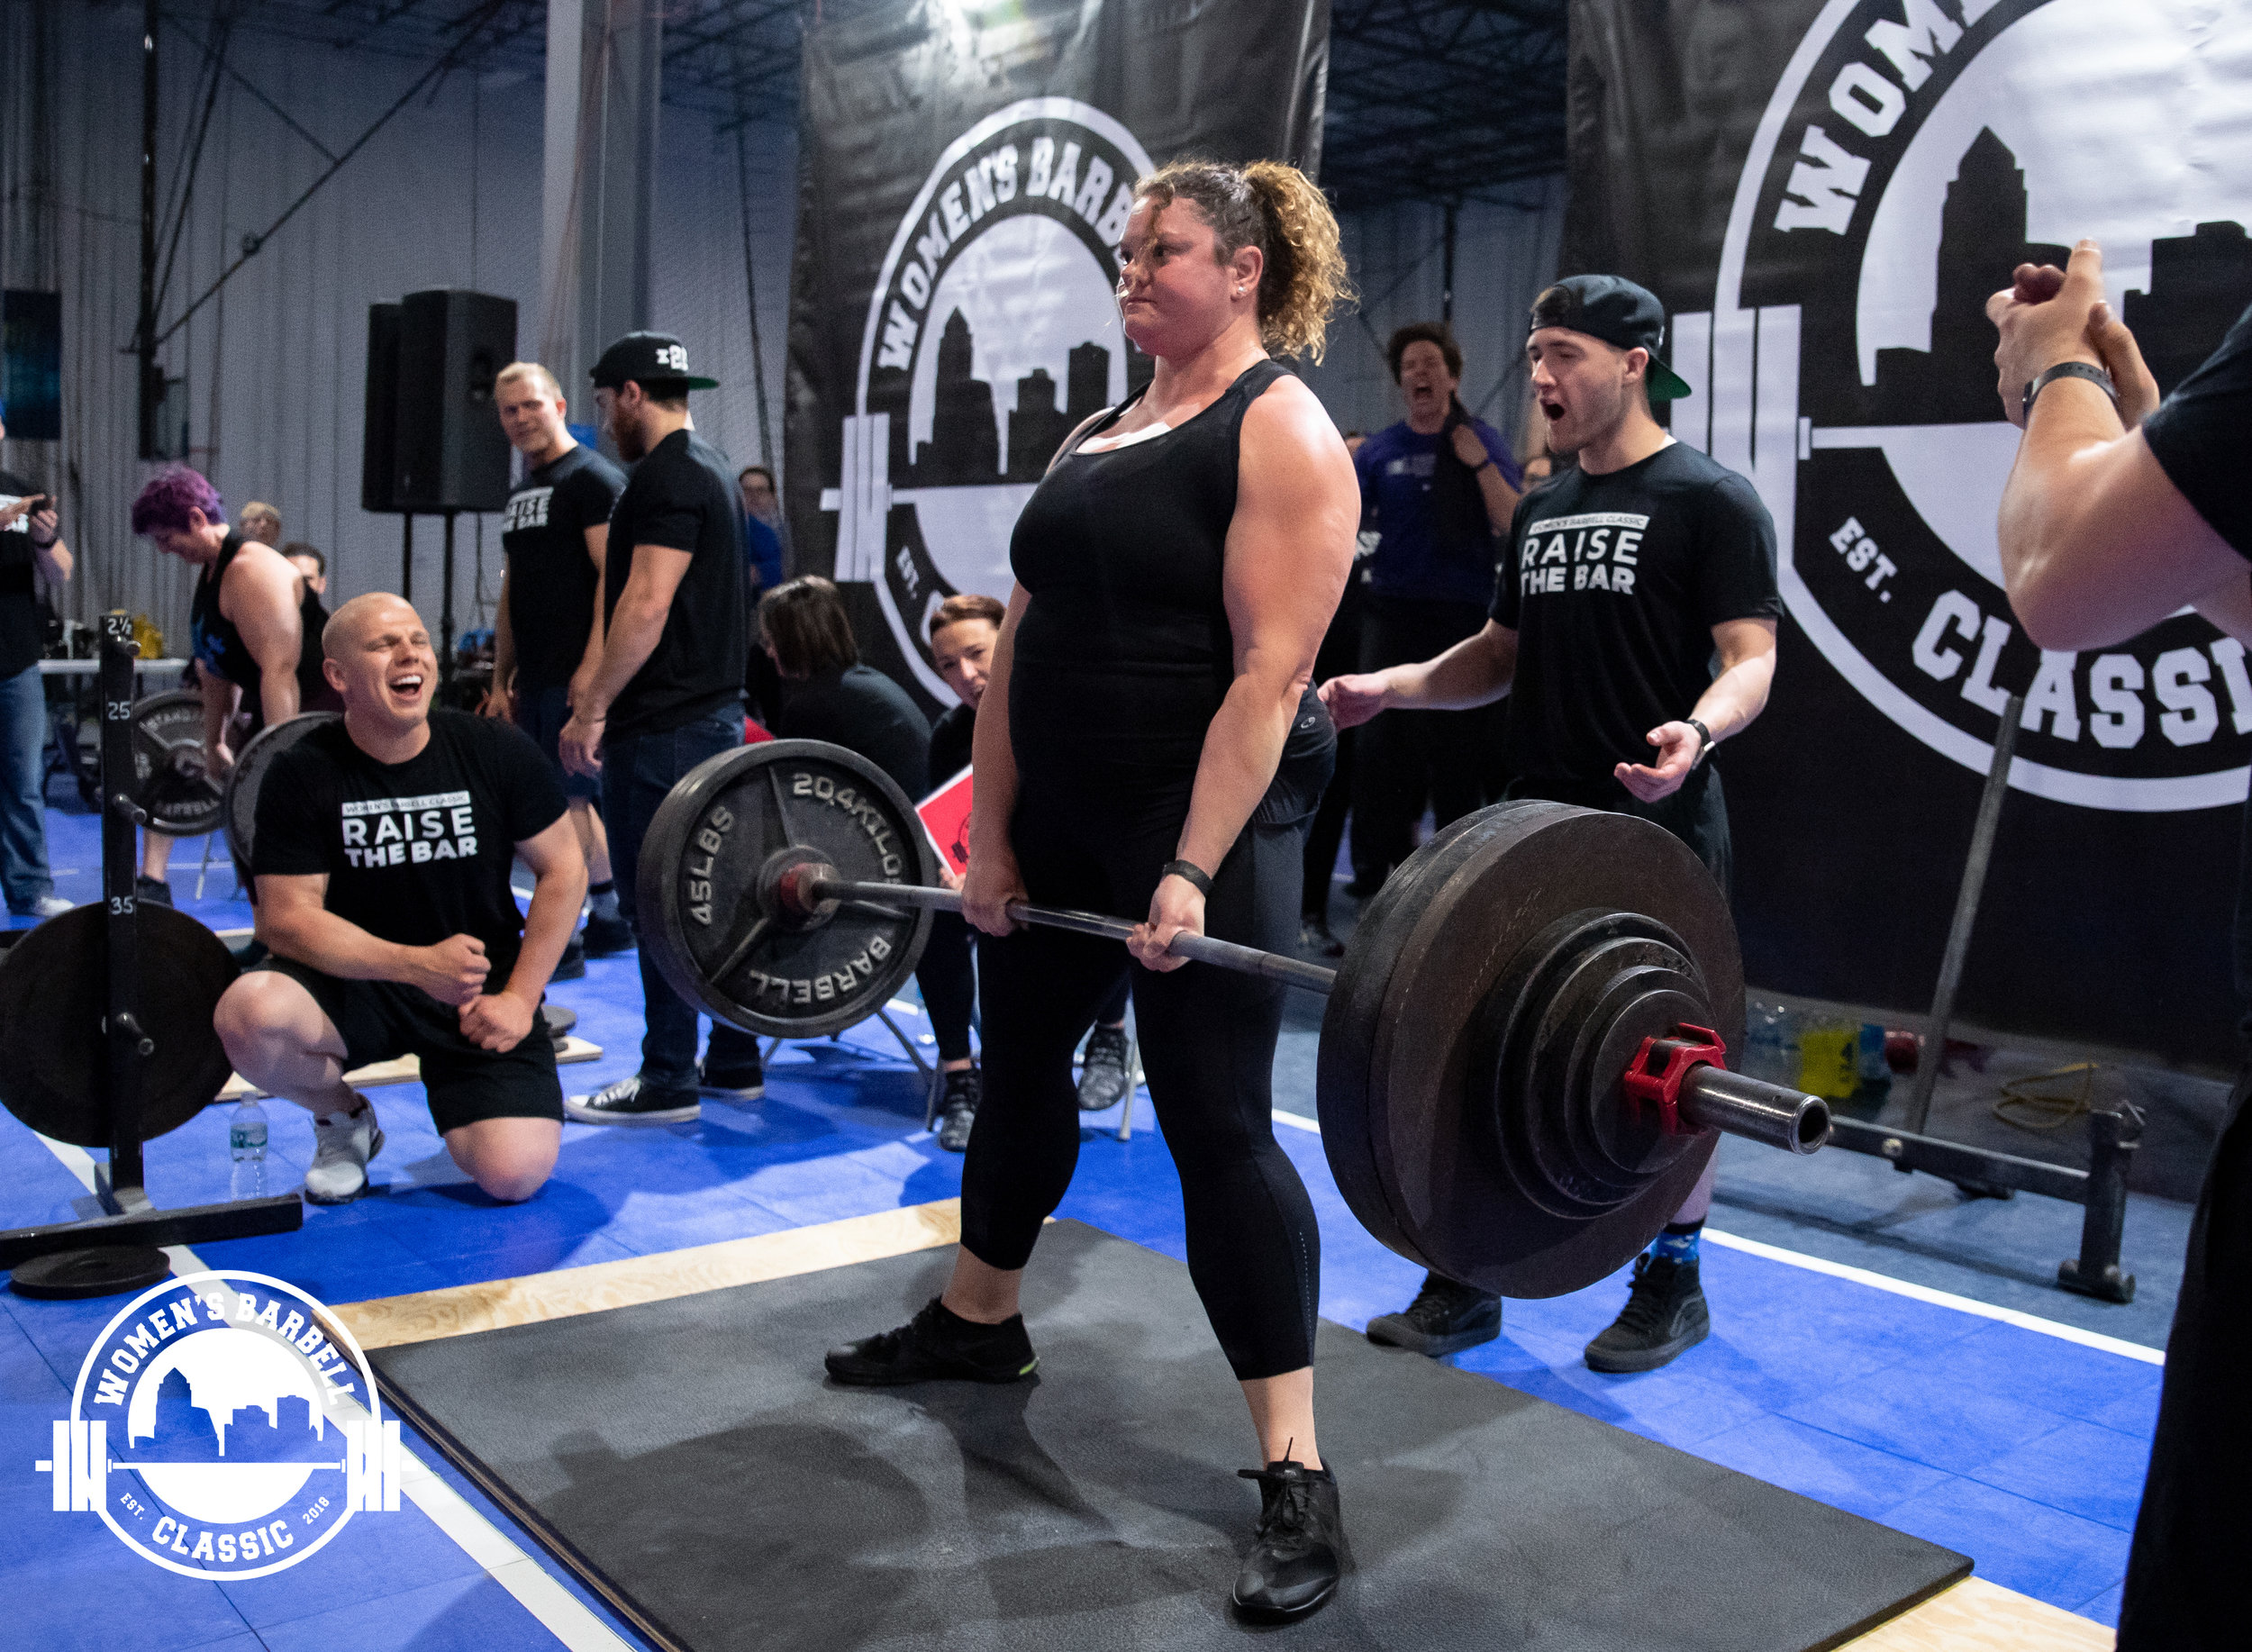 Our Mission - The Women's Barbell Classic is a female strength movement. Our mission is to raise the bar for the women in our community. To educate and provide opportunities that allow women to experience what it means to be physically strong, and how that reverberates throughout the rest of their life.Learn More